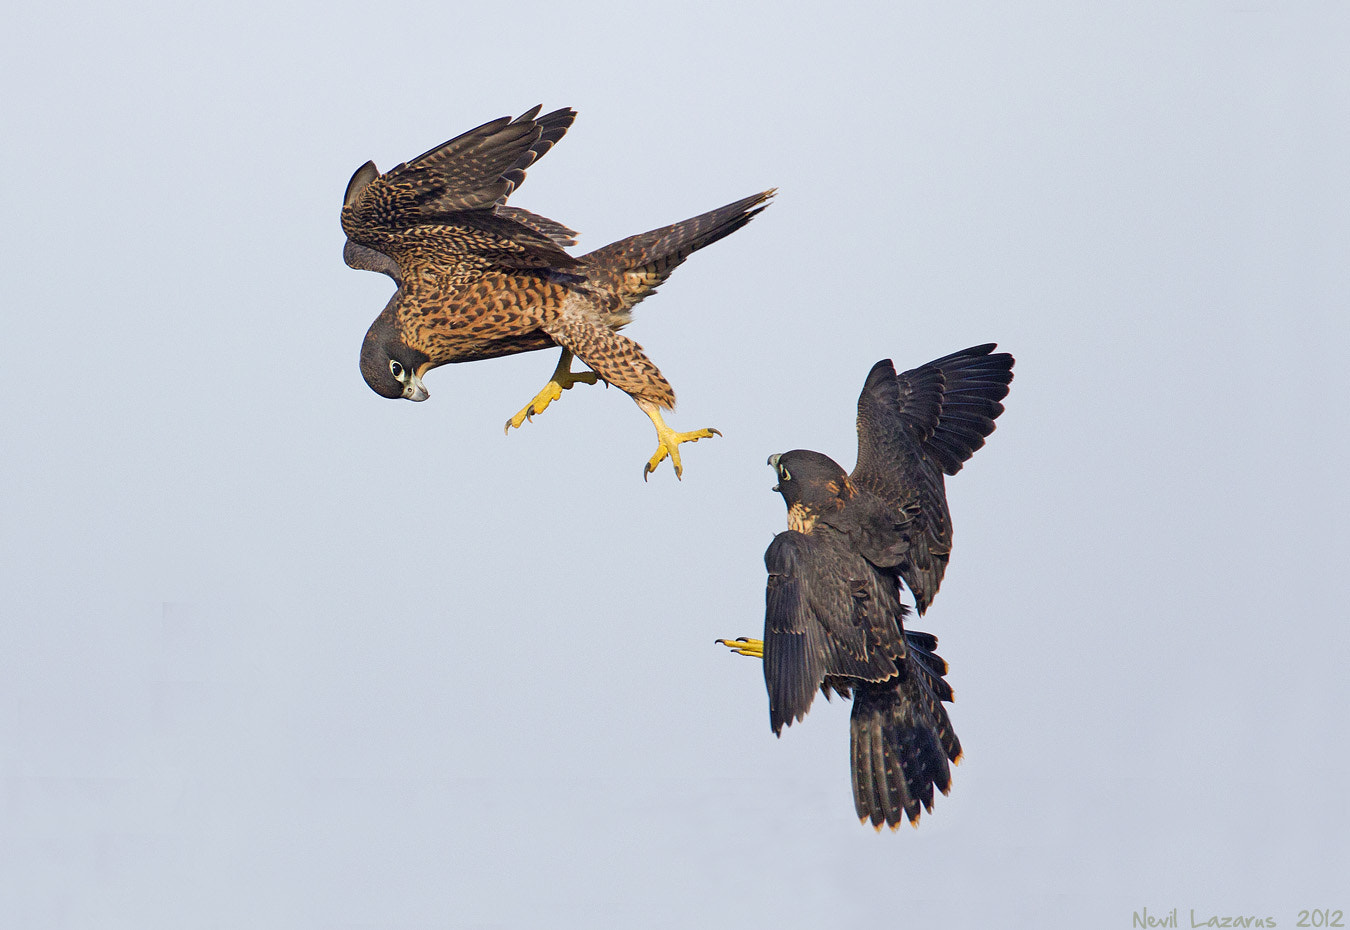 Photograph Peregrine Falcon - juveniles learning by Nevil Lazarus on 500px